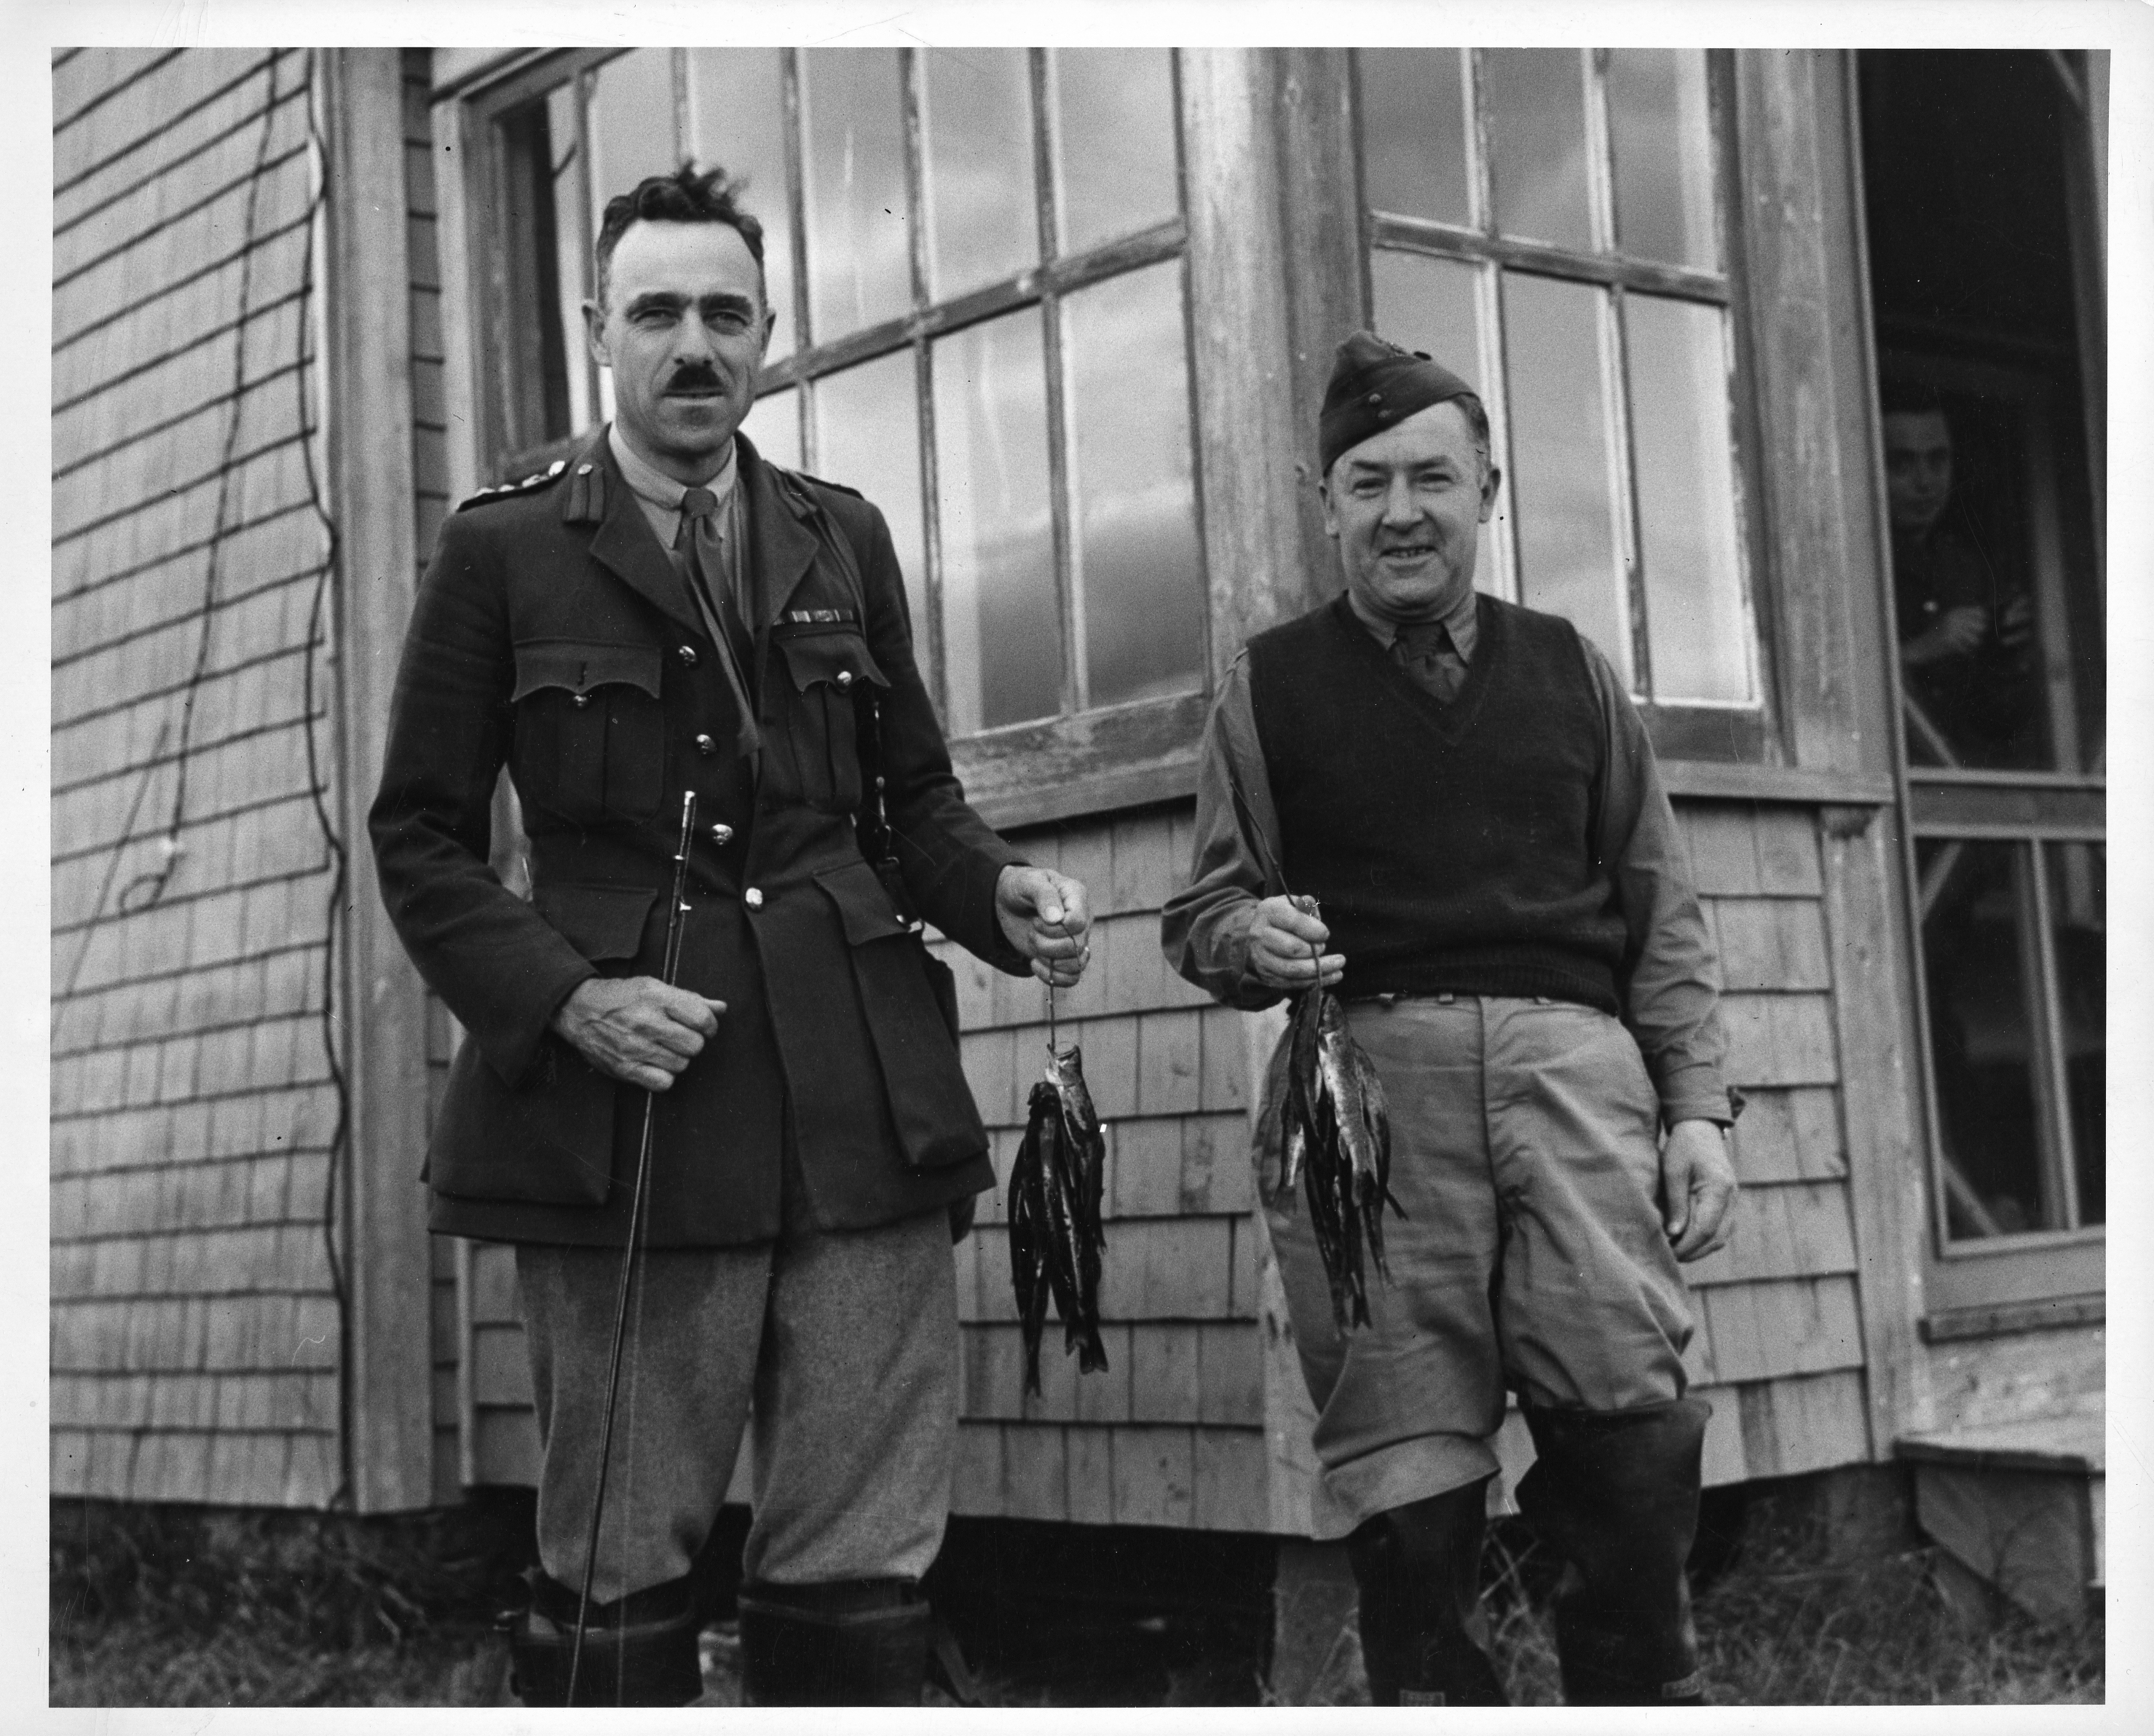 Brigadier Roome and Major Keen fishing at the Canadian Army artillery camp at Tracadie, New Brunswick [Canadian Army Photo].  Richard Edward Graham Roome fonds (MS-2-252) Box 2, File 9